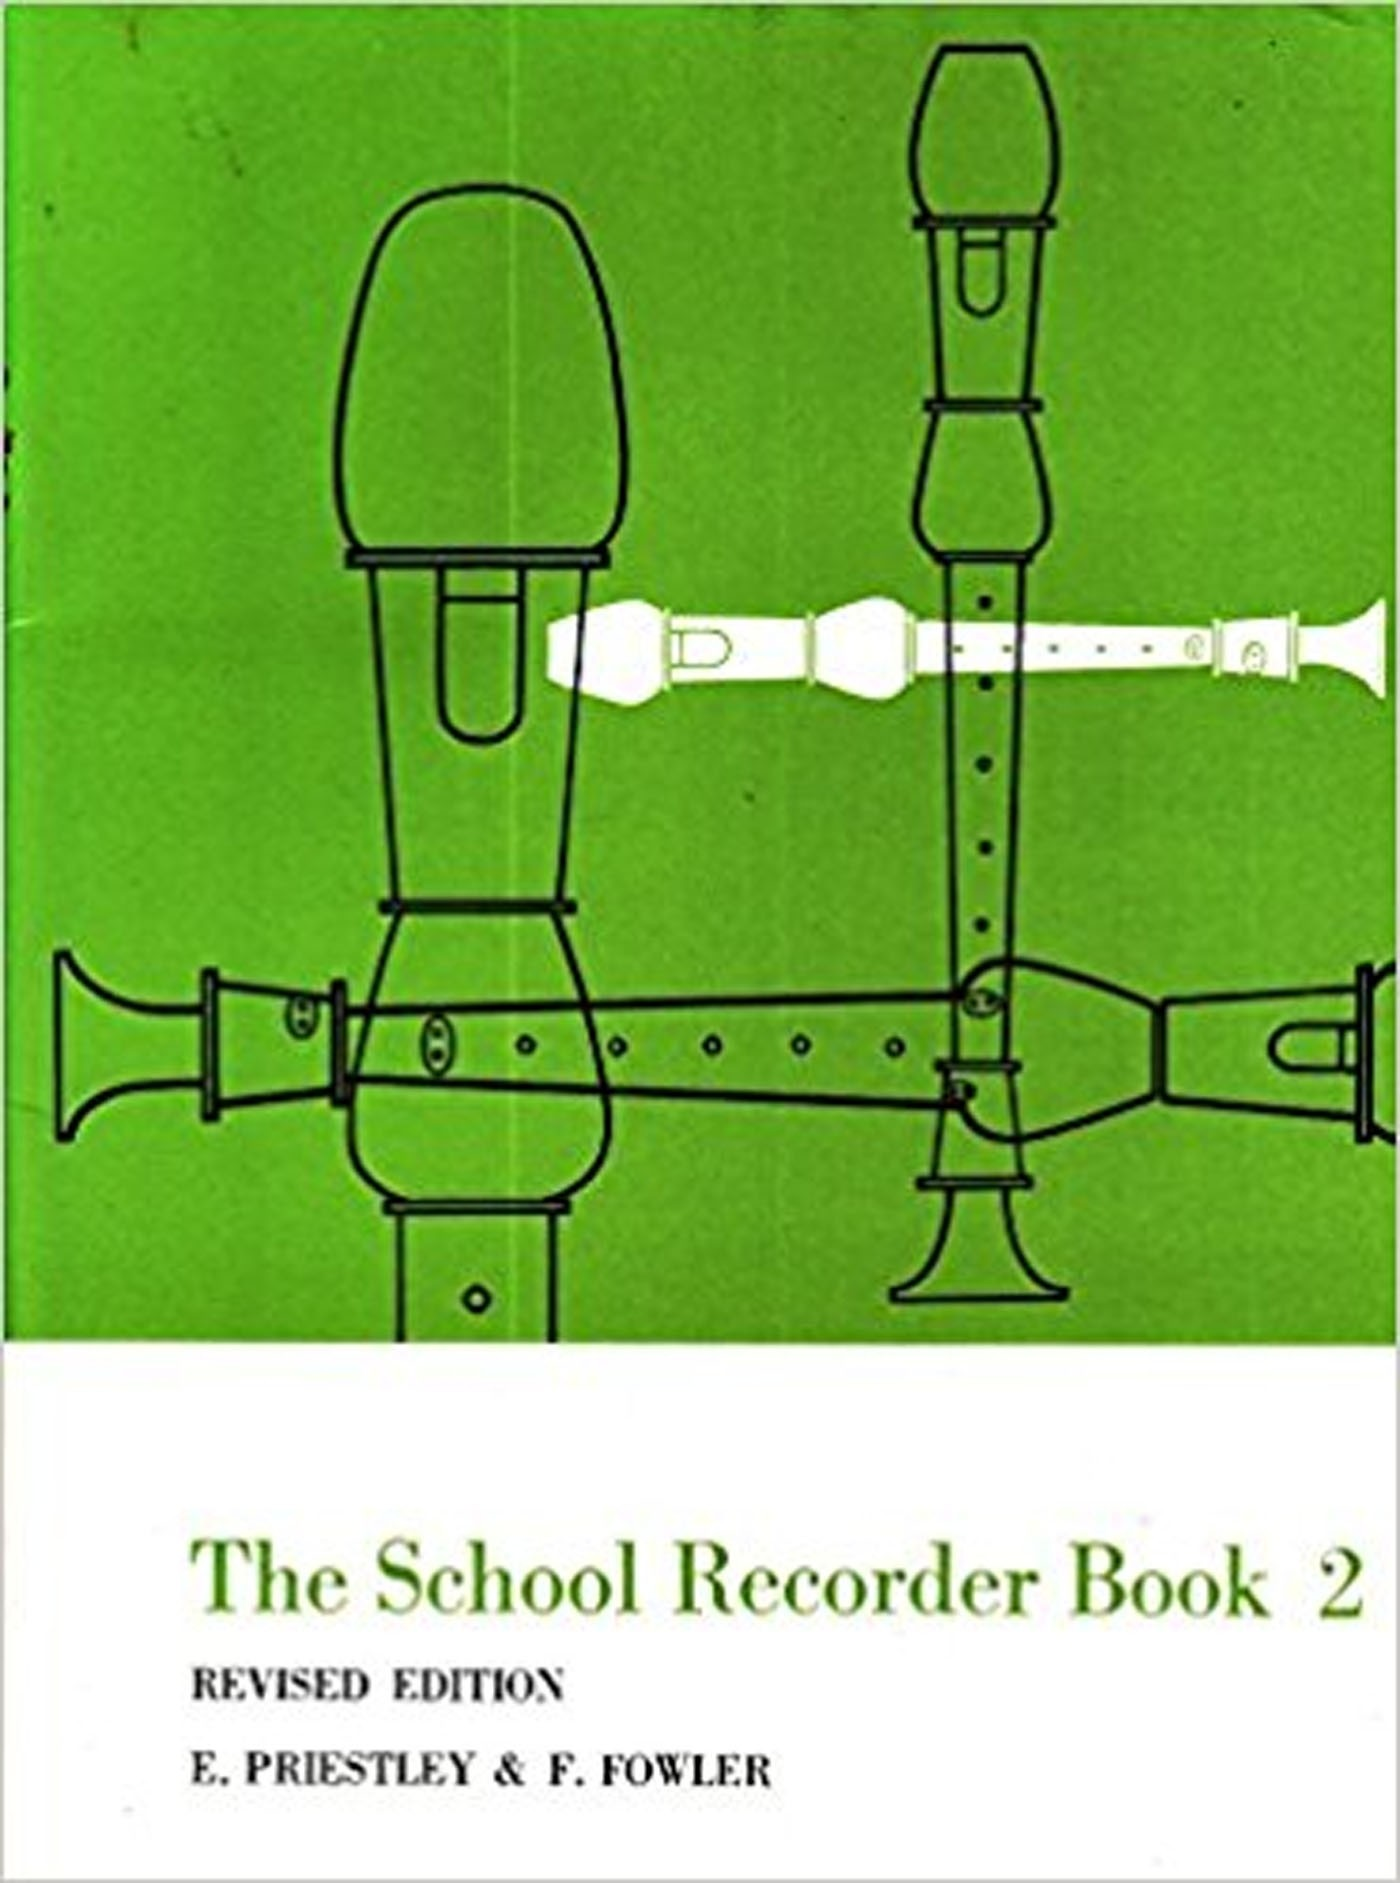 The School Recorder Book 2 Revised Edition Priestley & Fowler S155